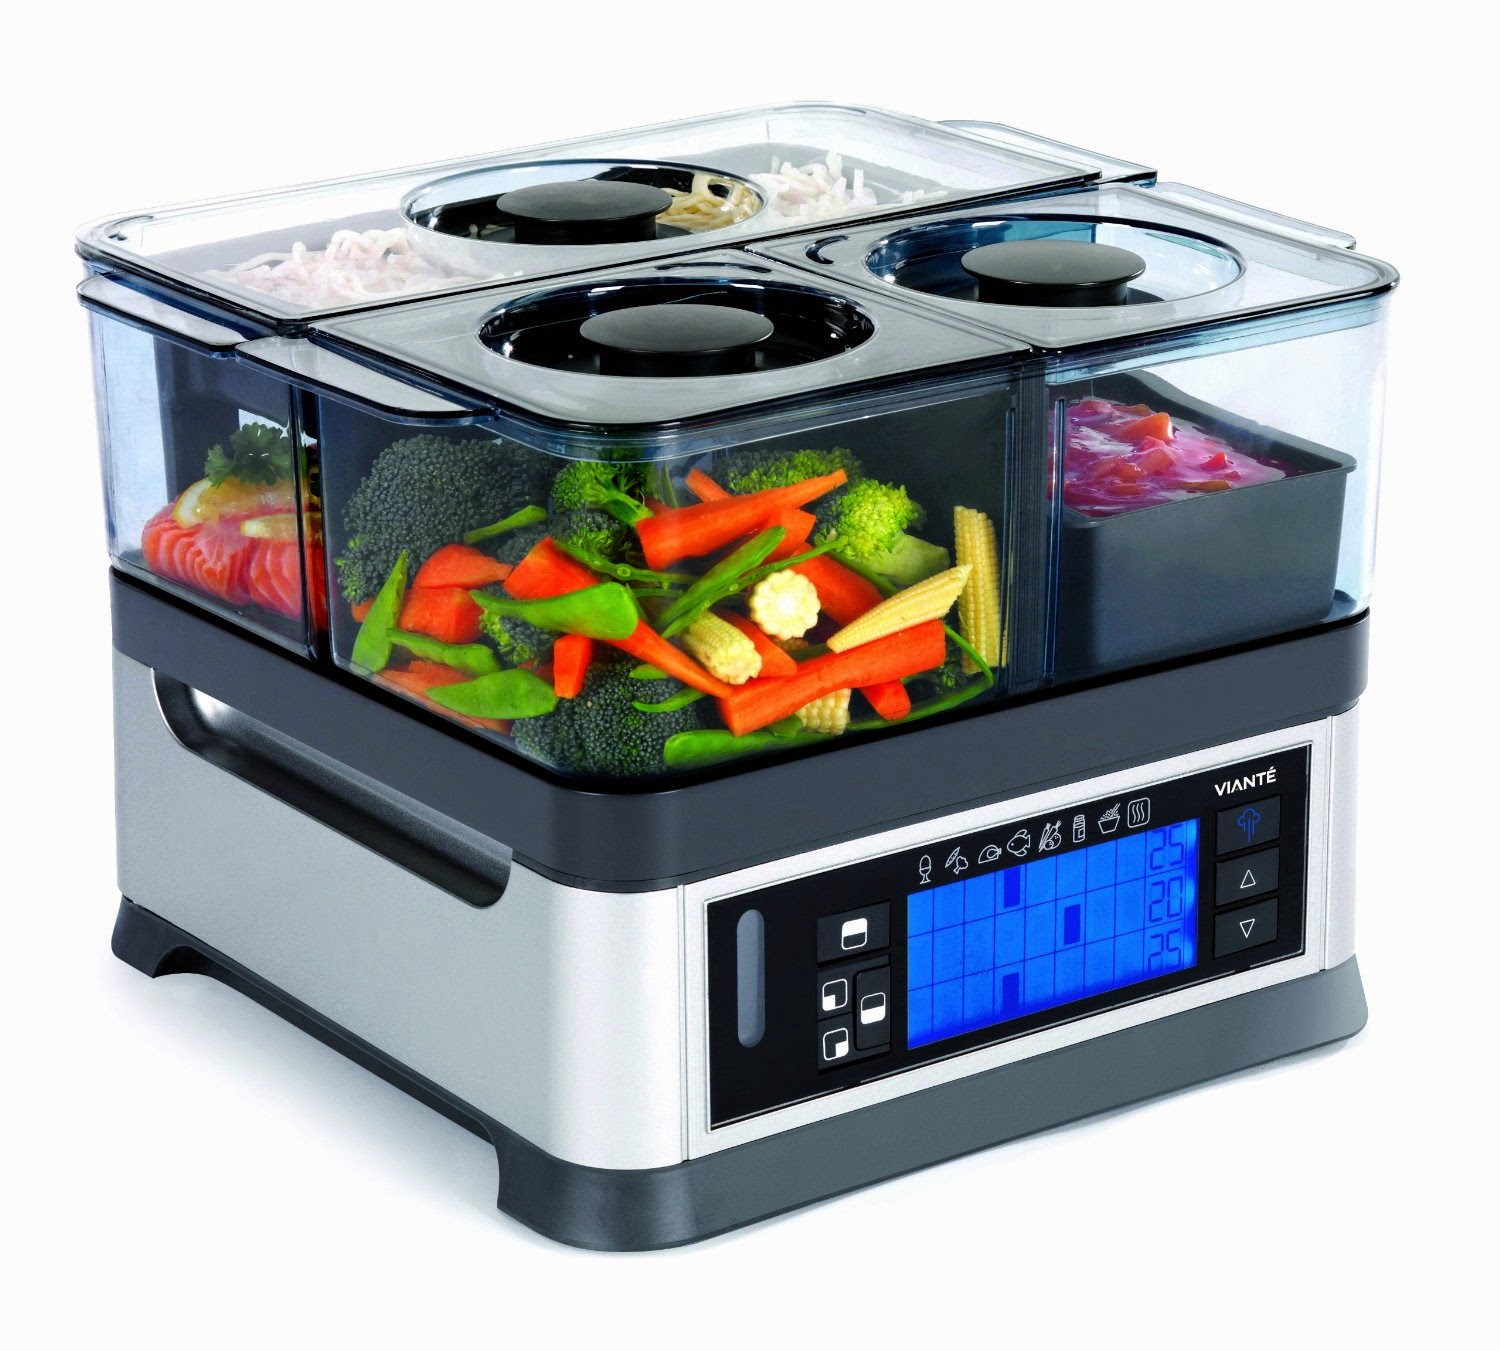 Viante CUC-30ST Intellisteam Counter Top Food Steamer, Review, for healthy cooking & eating